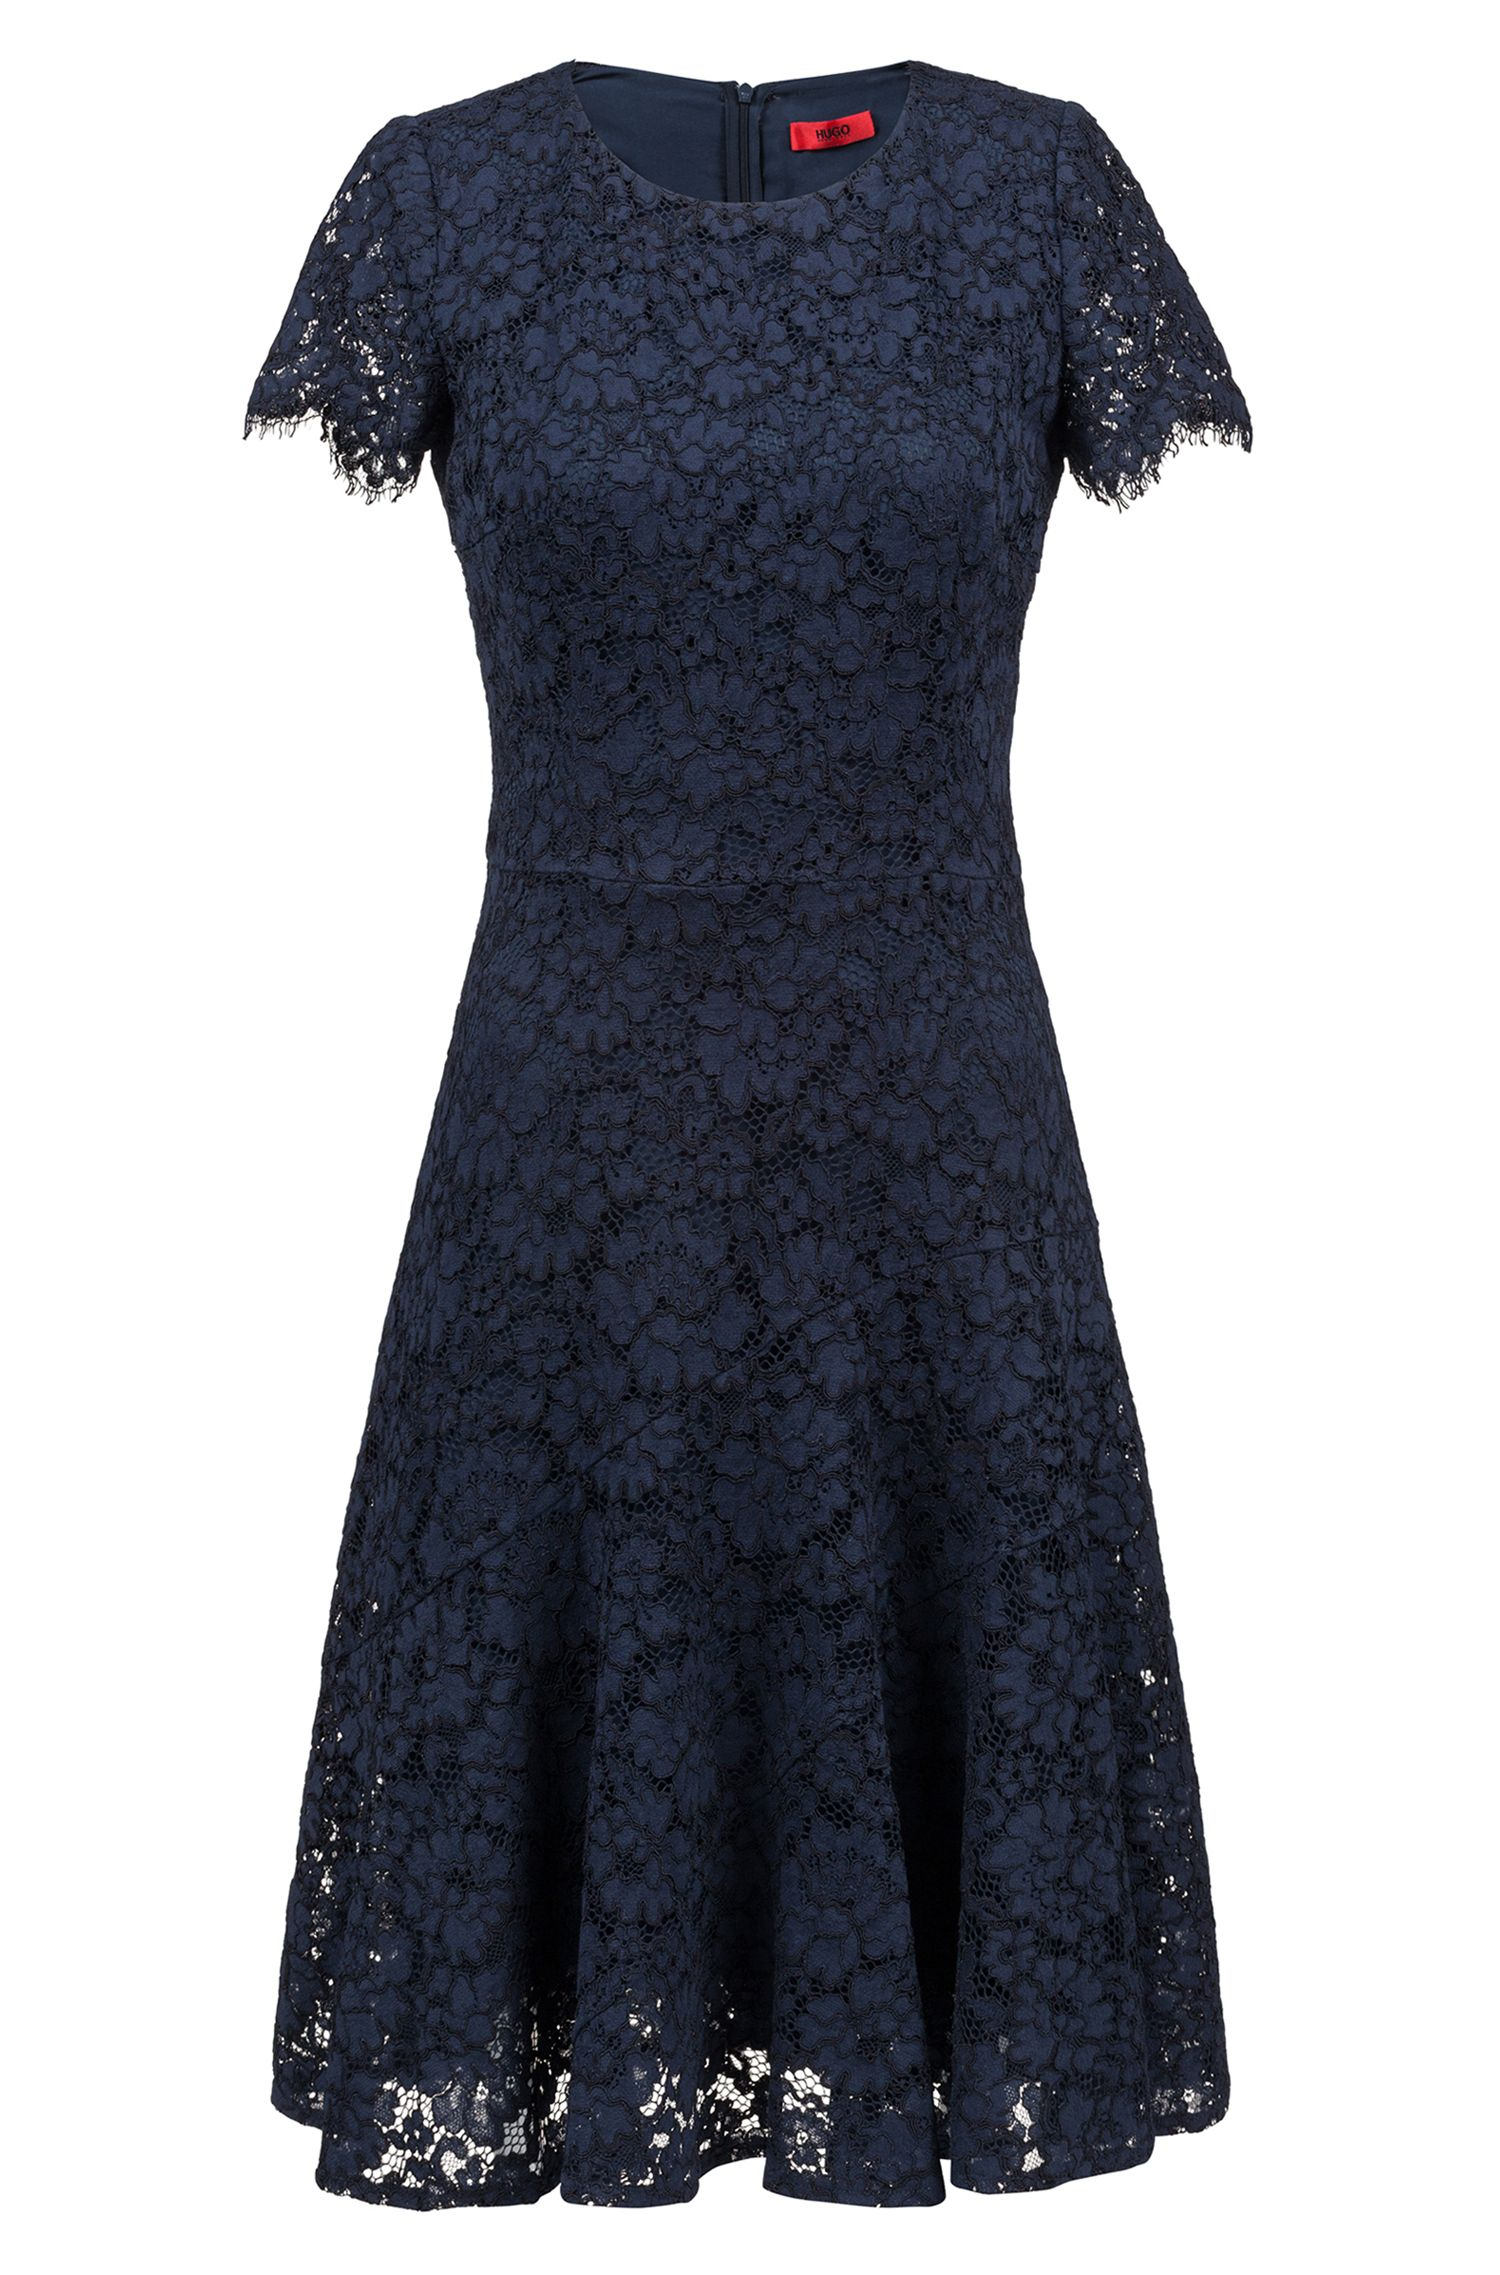 Short-sleeved lace dress with scalloped skirt